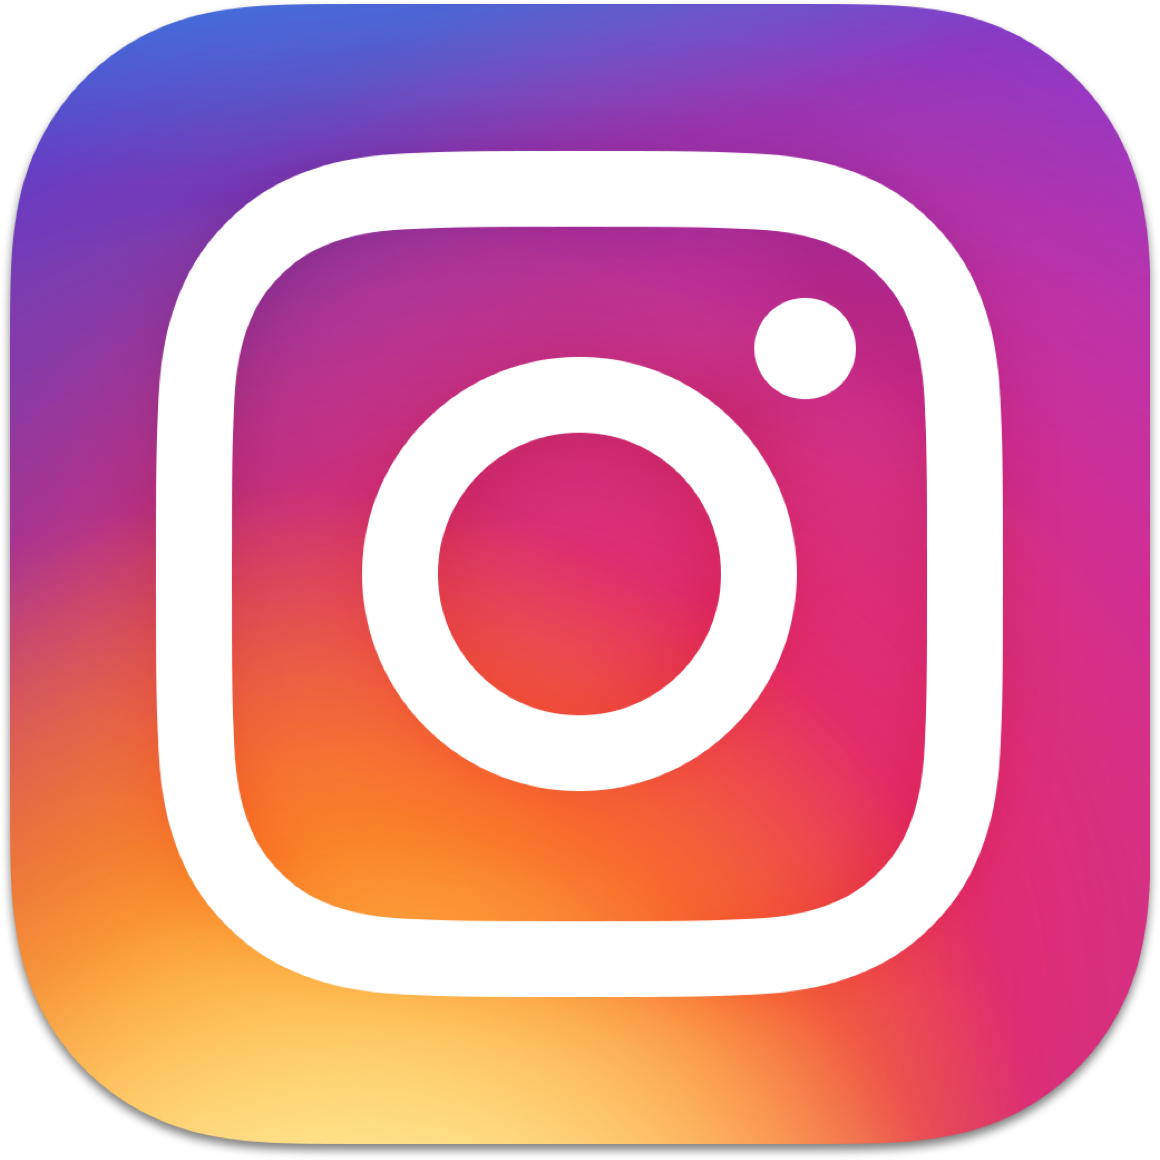 Instagram new. The logo png